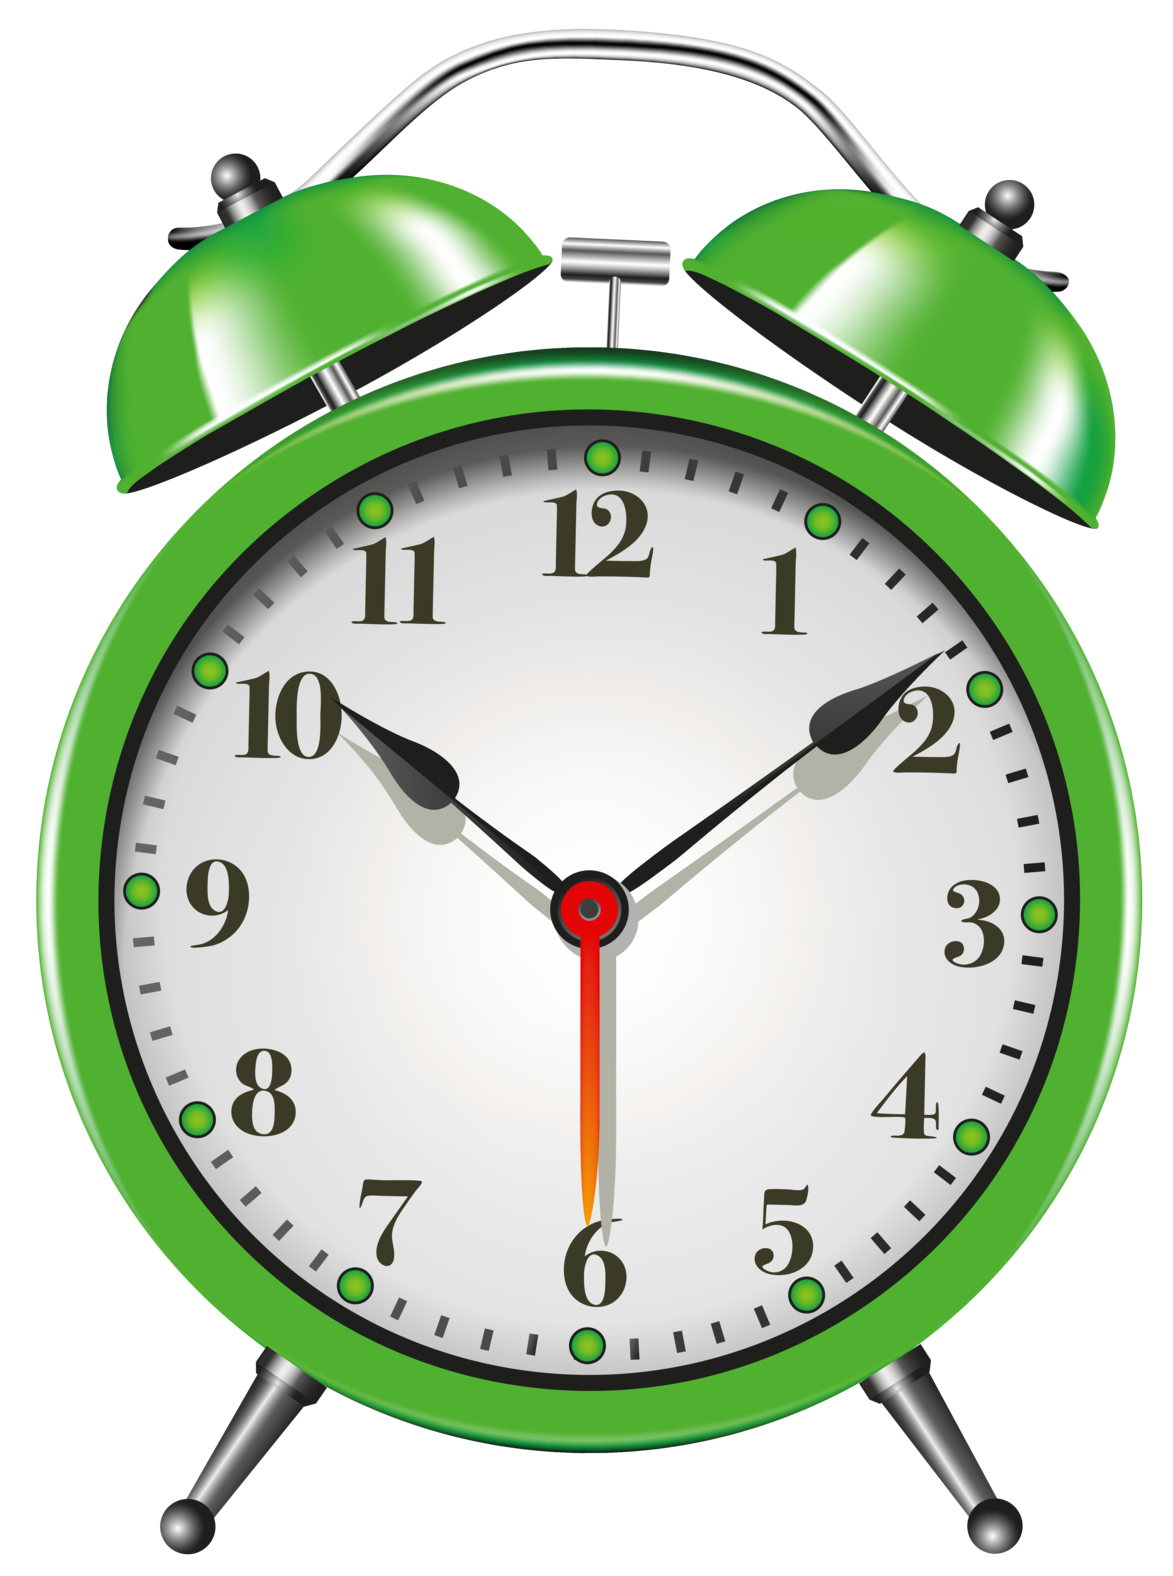 amazing alarm clock. See clipart analog watch